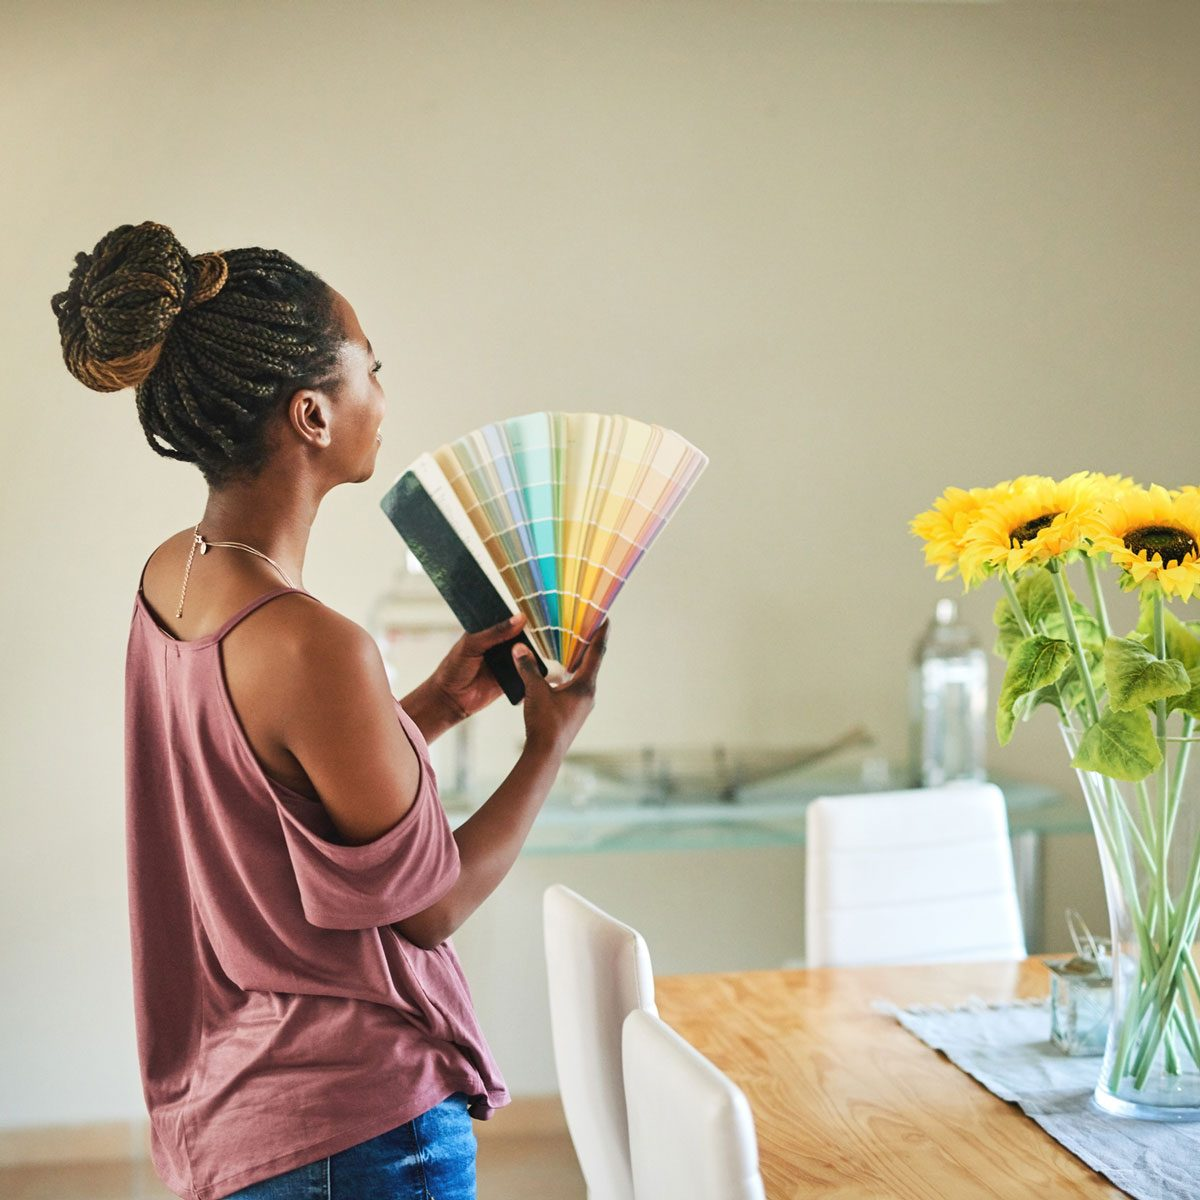 Woman choosing paint colors for redecorating